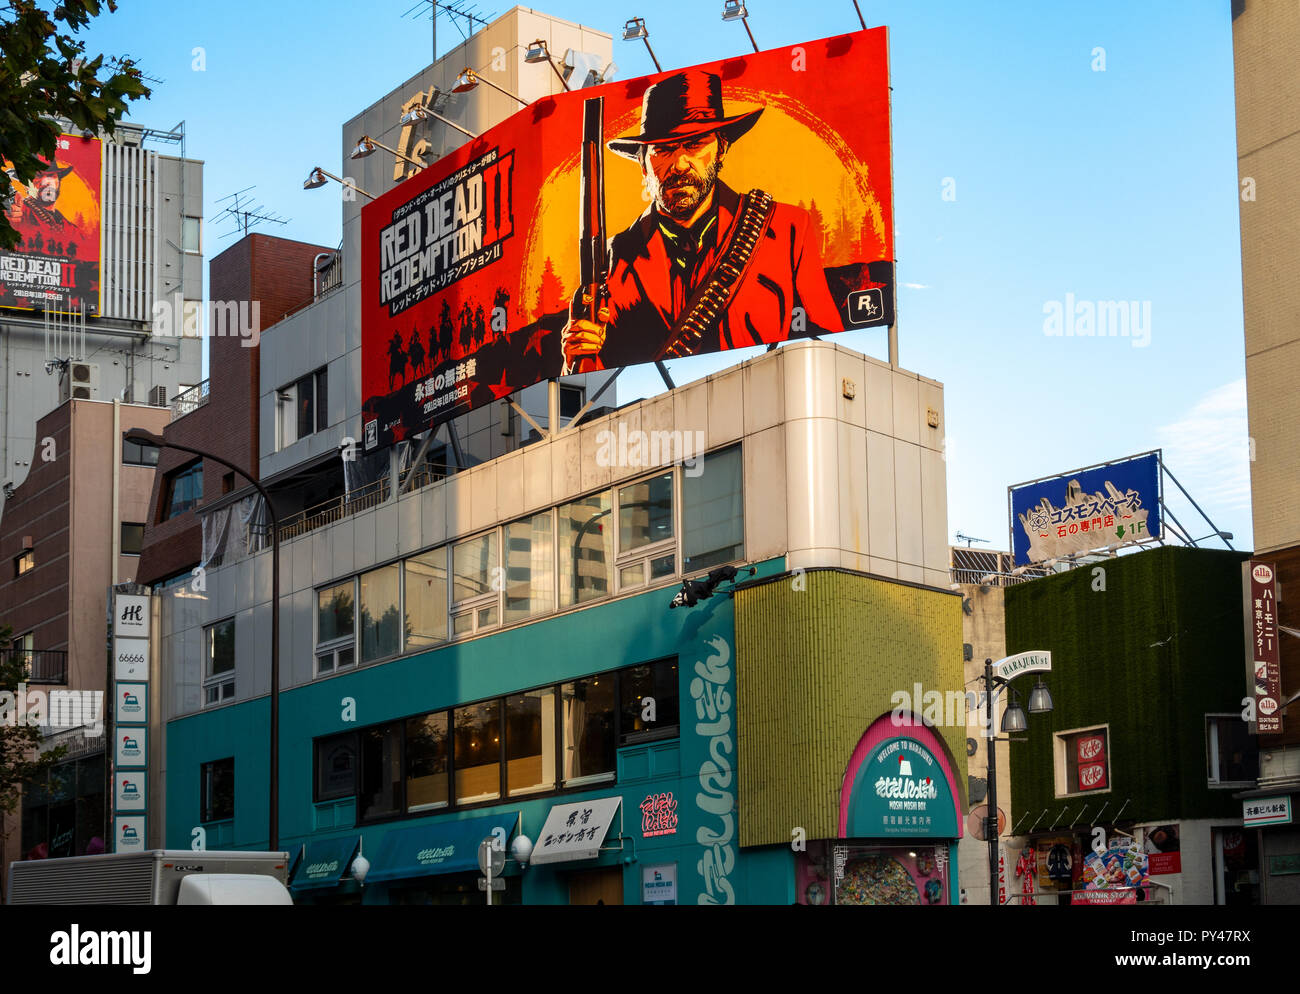 Red Dead Redemption II Game new release billboard in Tokyo Harajuku. Billboards corner Harajuku St and Meji St on Moshi Moshi Box building. Oct 2018 - Stock Image